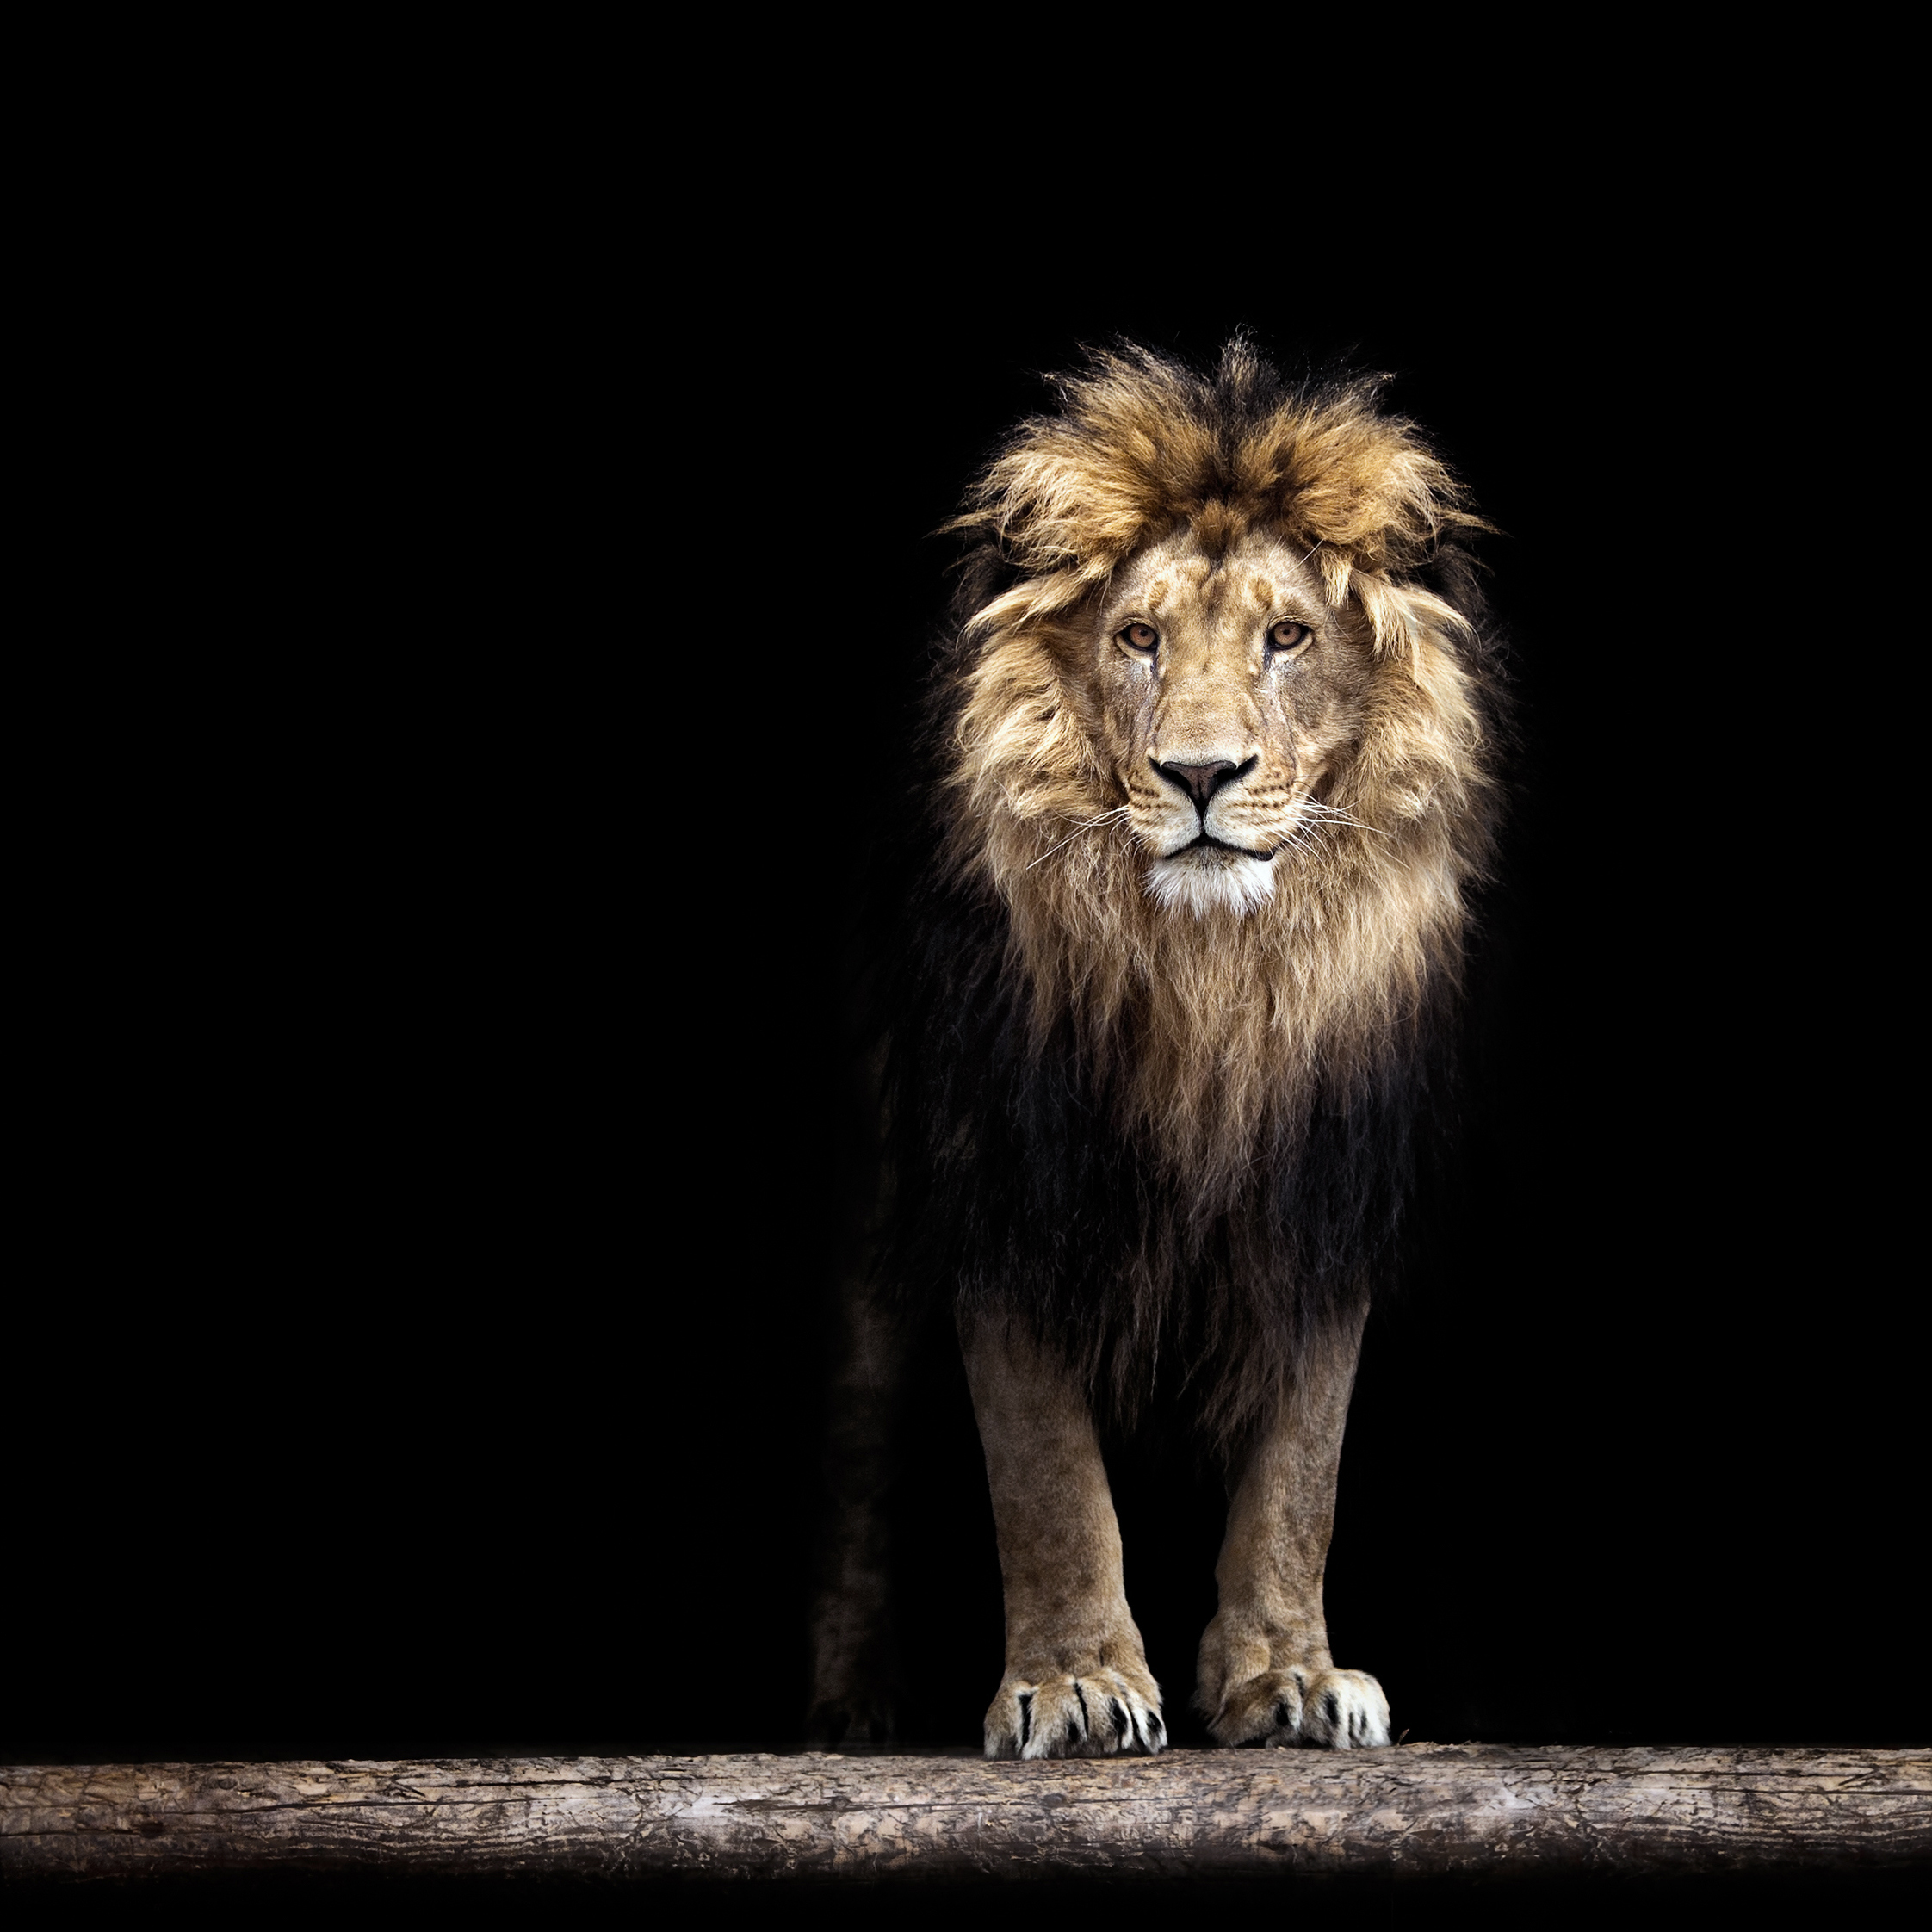 The female lion is our spirit animal. But ask us about the male lion's mane.